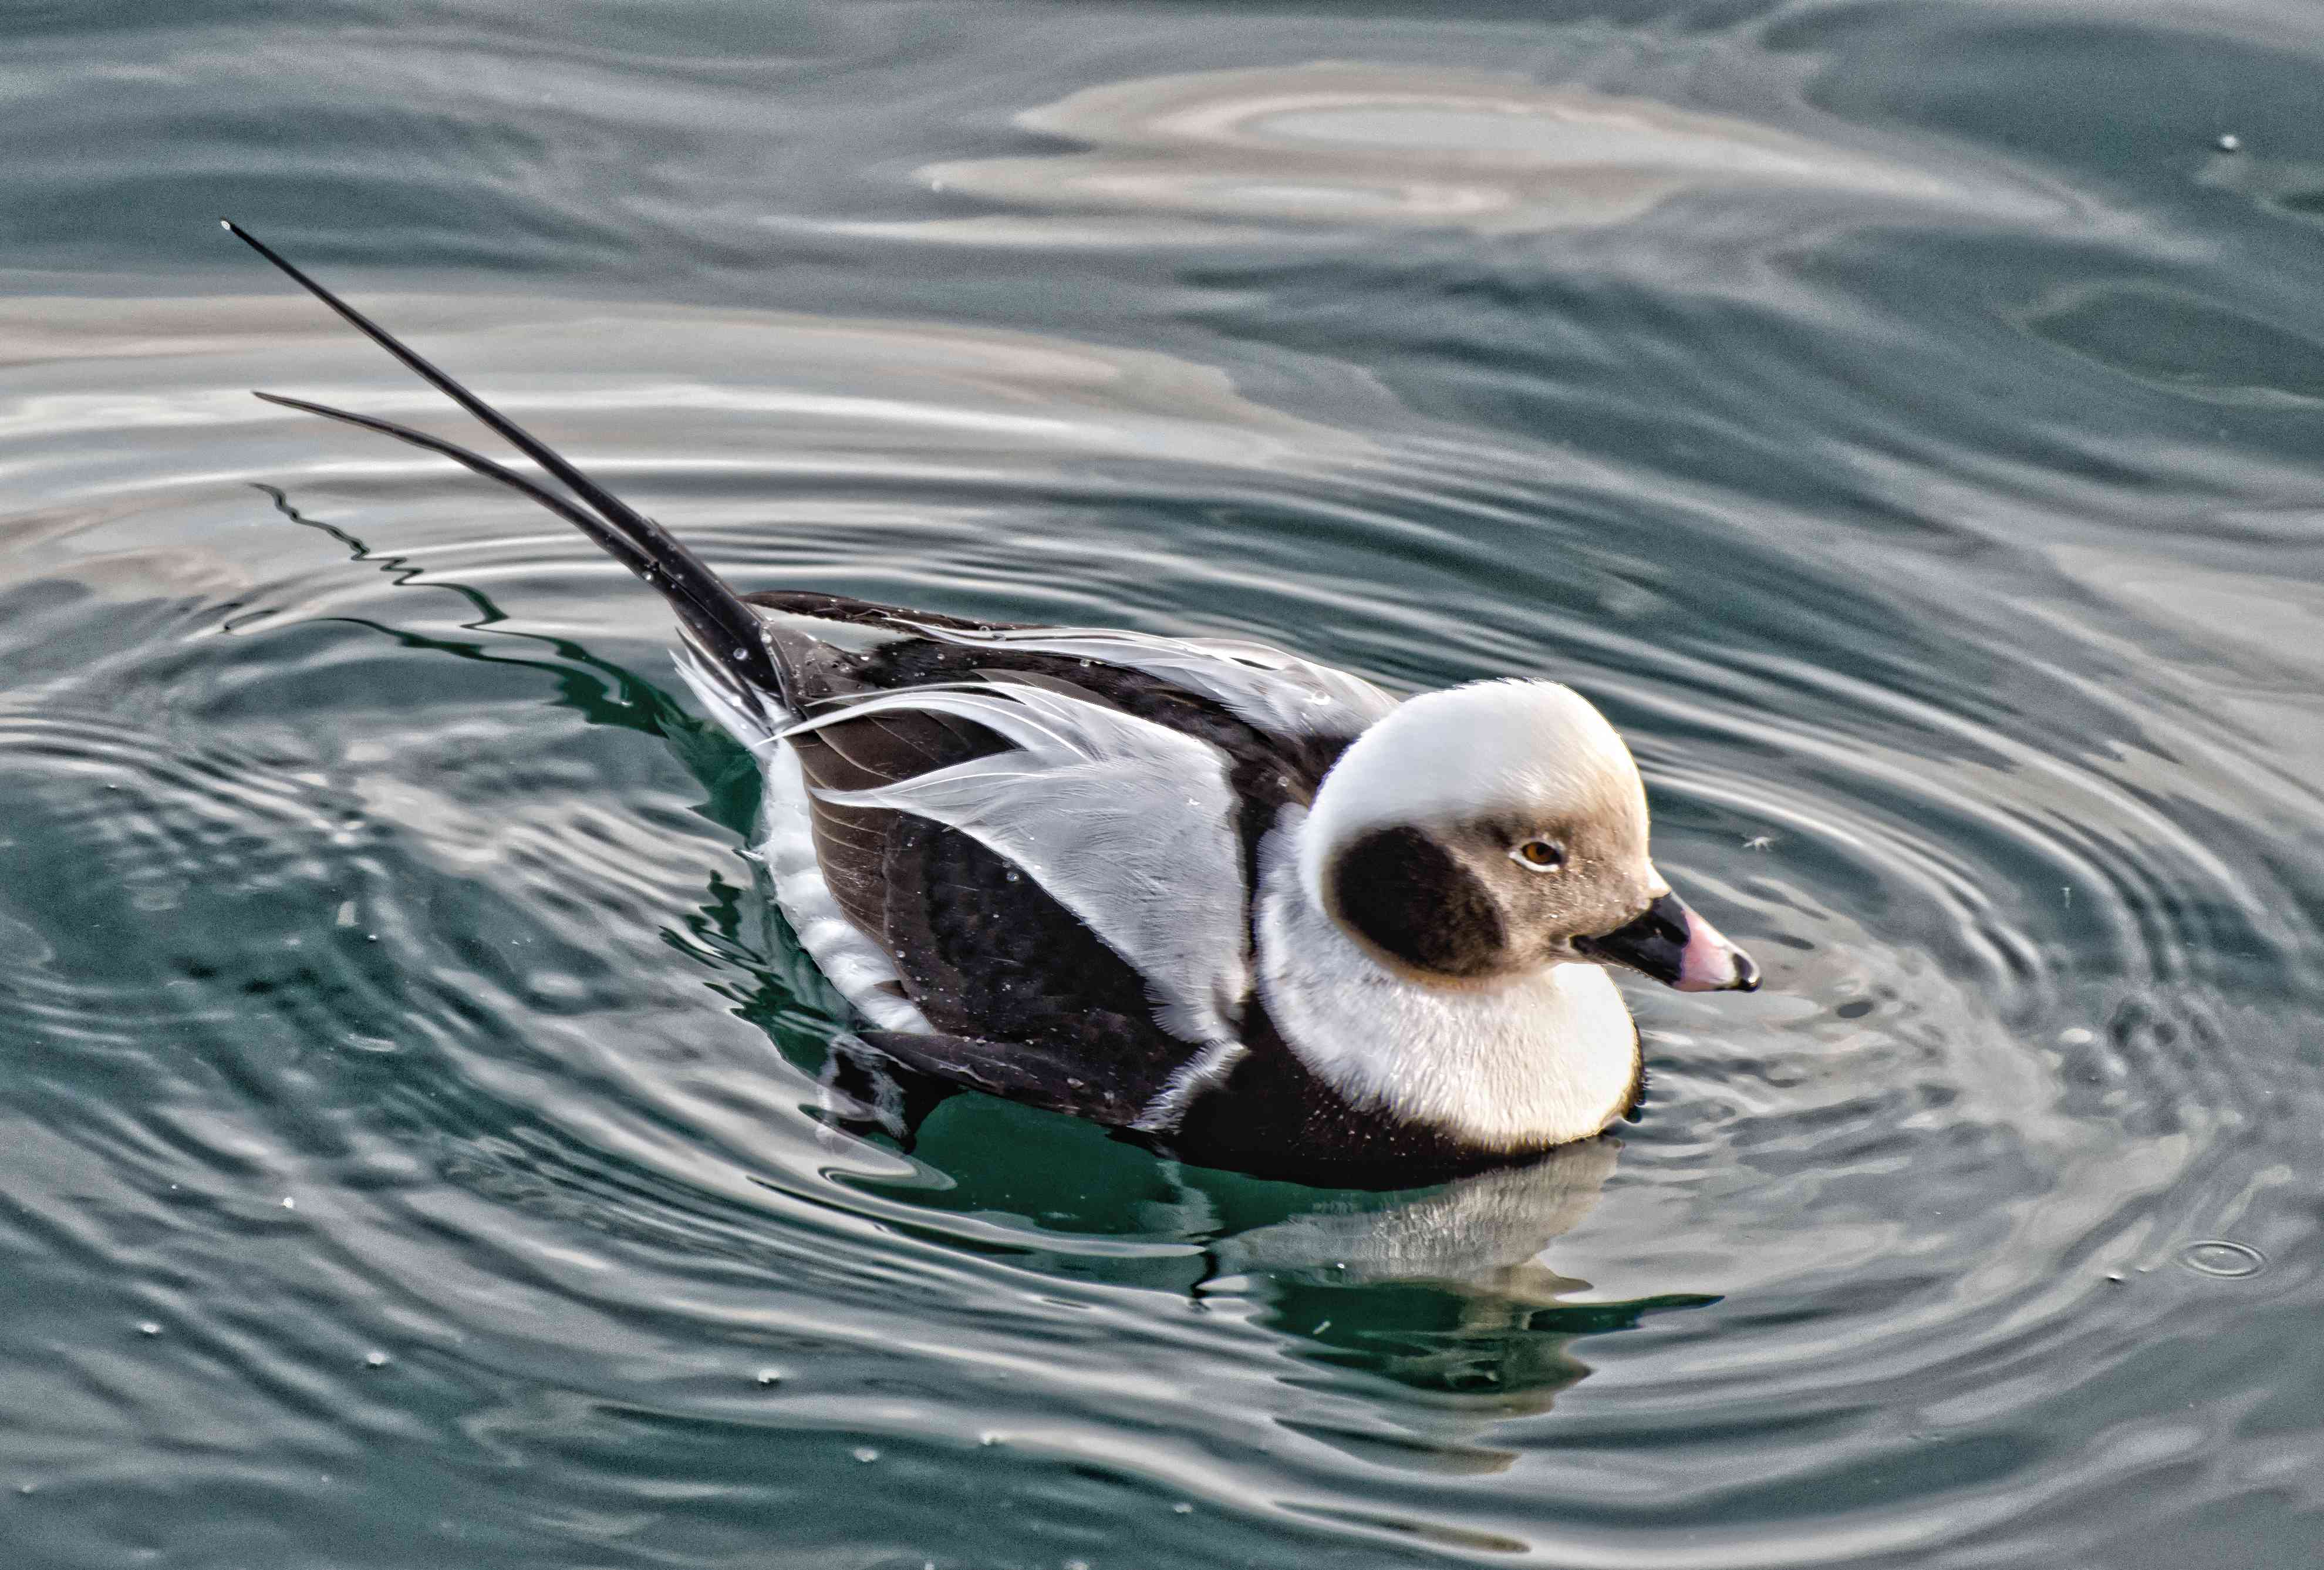 Long-tailed duck sitting in water